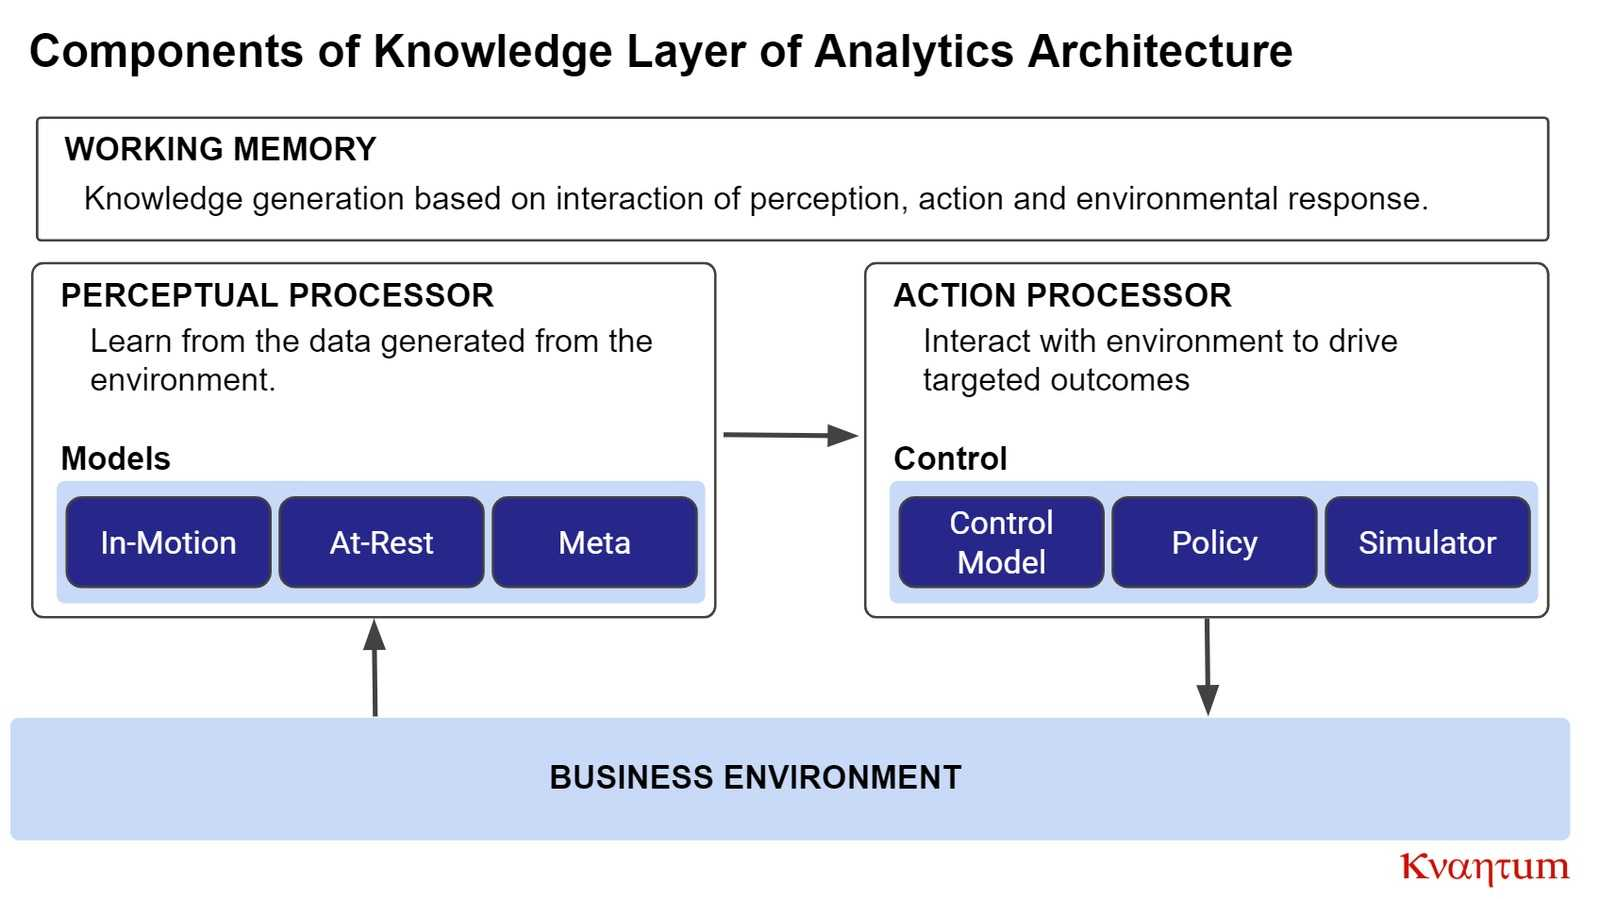 kvantum analytics architecture knowledge layer